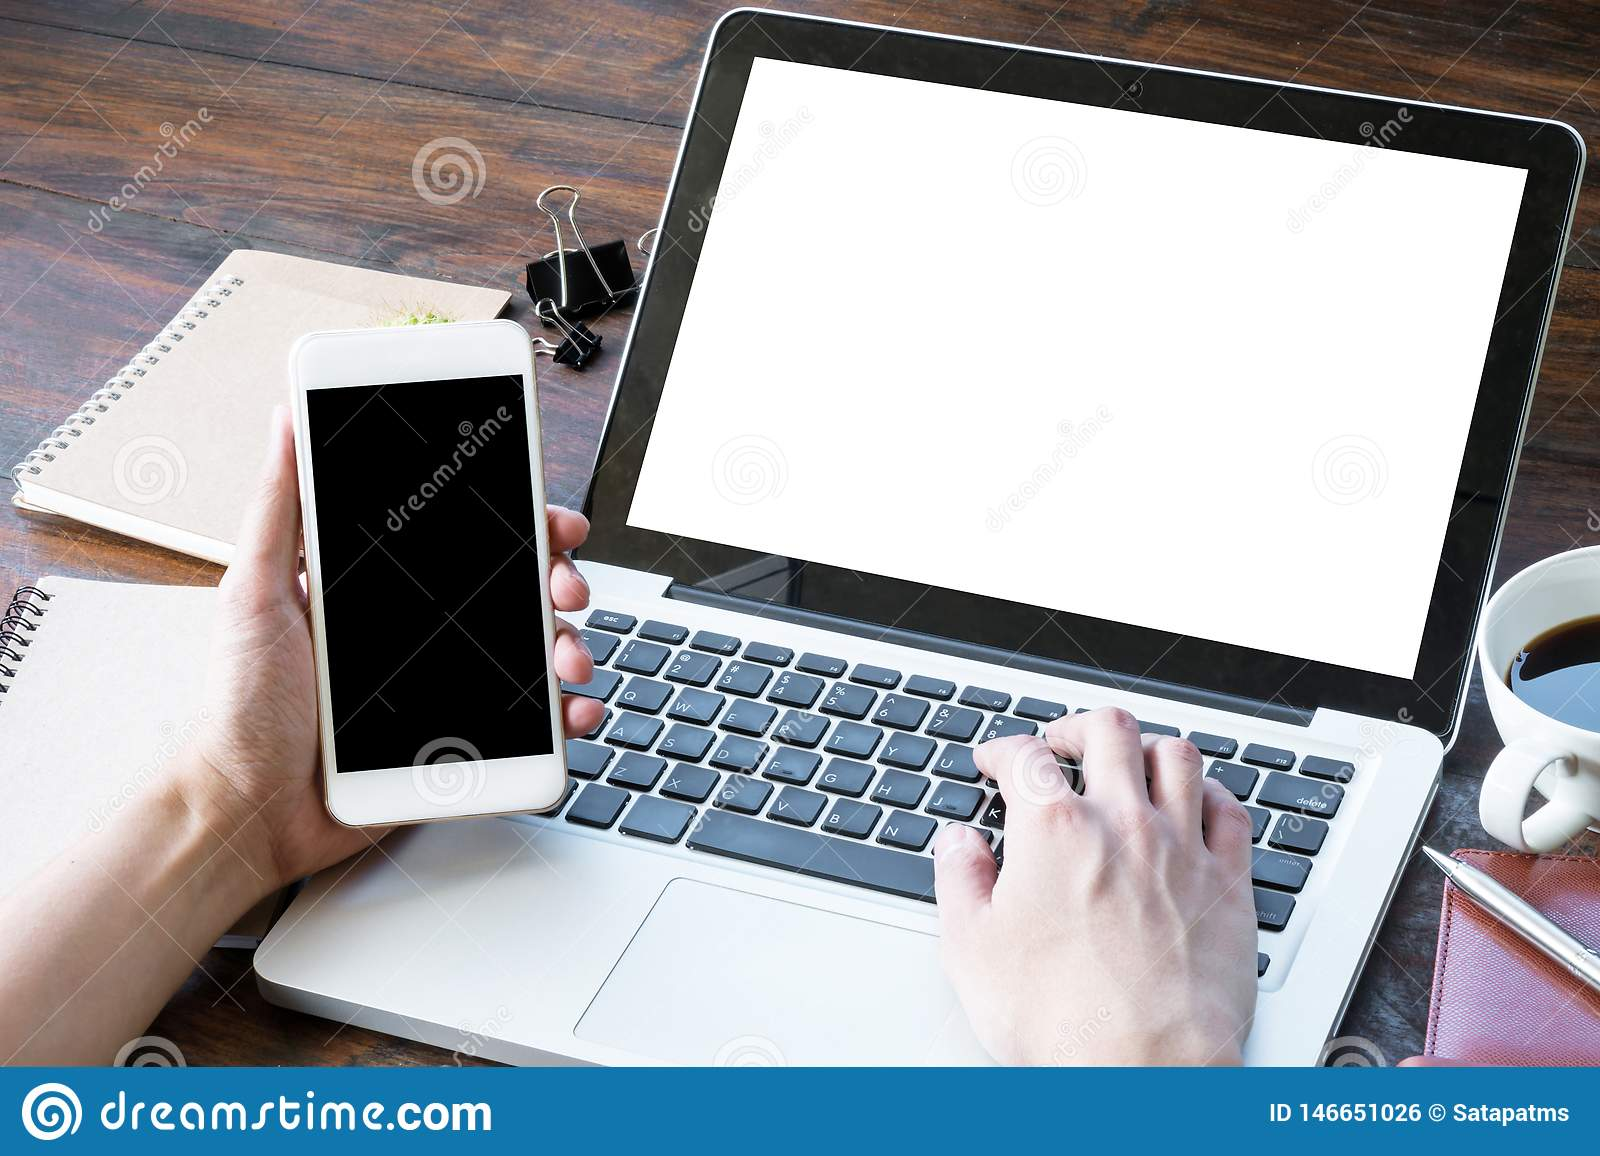 Man Is Holding Smartphone And Typing On Laptop Keyboard